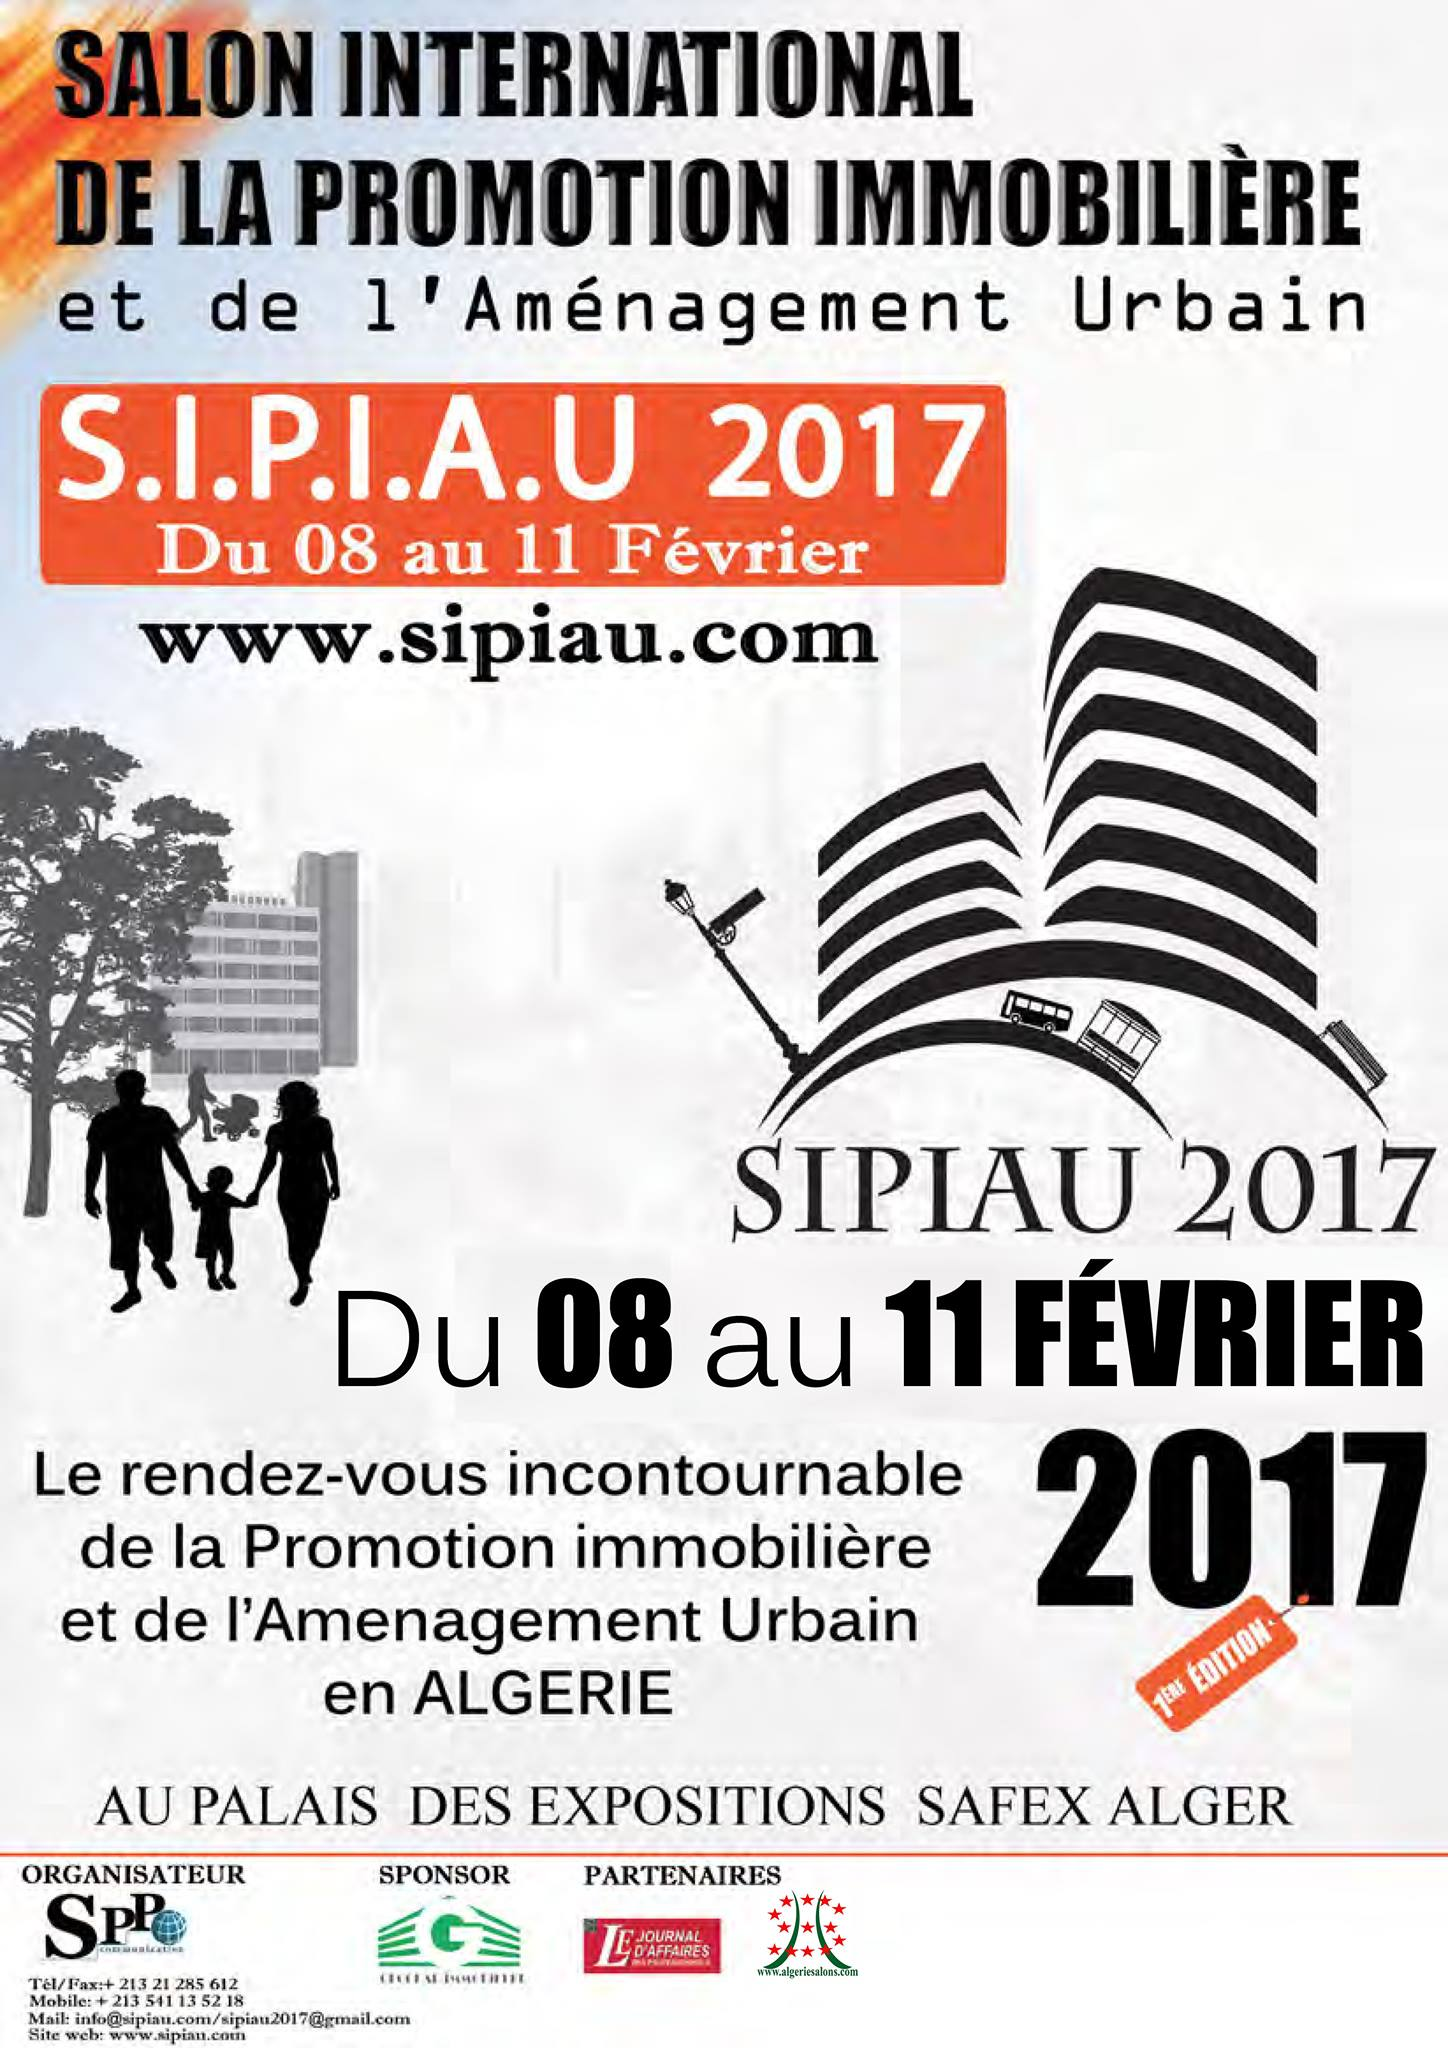 Salon De L Immobilier 2017 Sipiau Salon International De La Promotion Immobilière Et De L